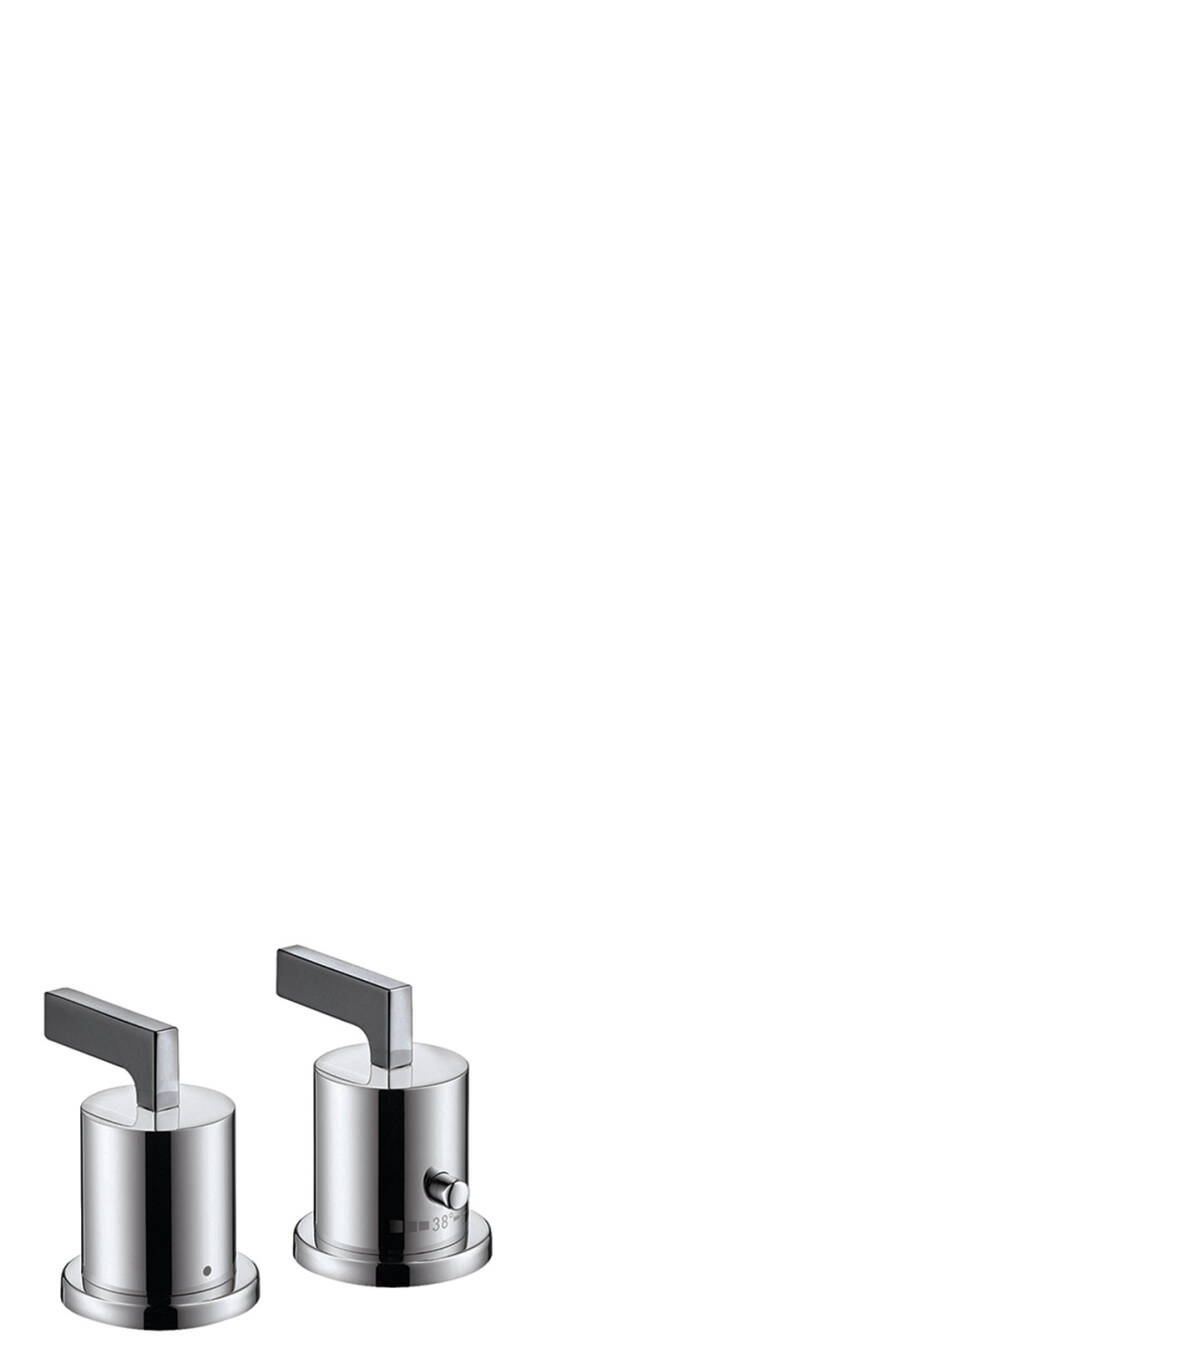 2-hole rim mounted thermostatic bath mixer with lever handles, Brushed Gold Optic, 39482250